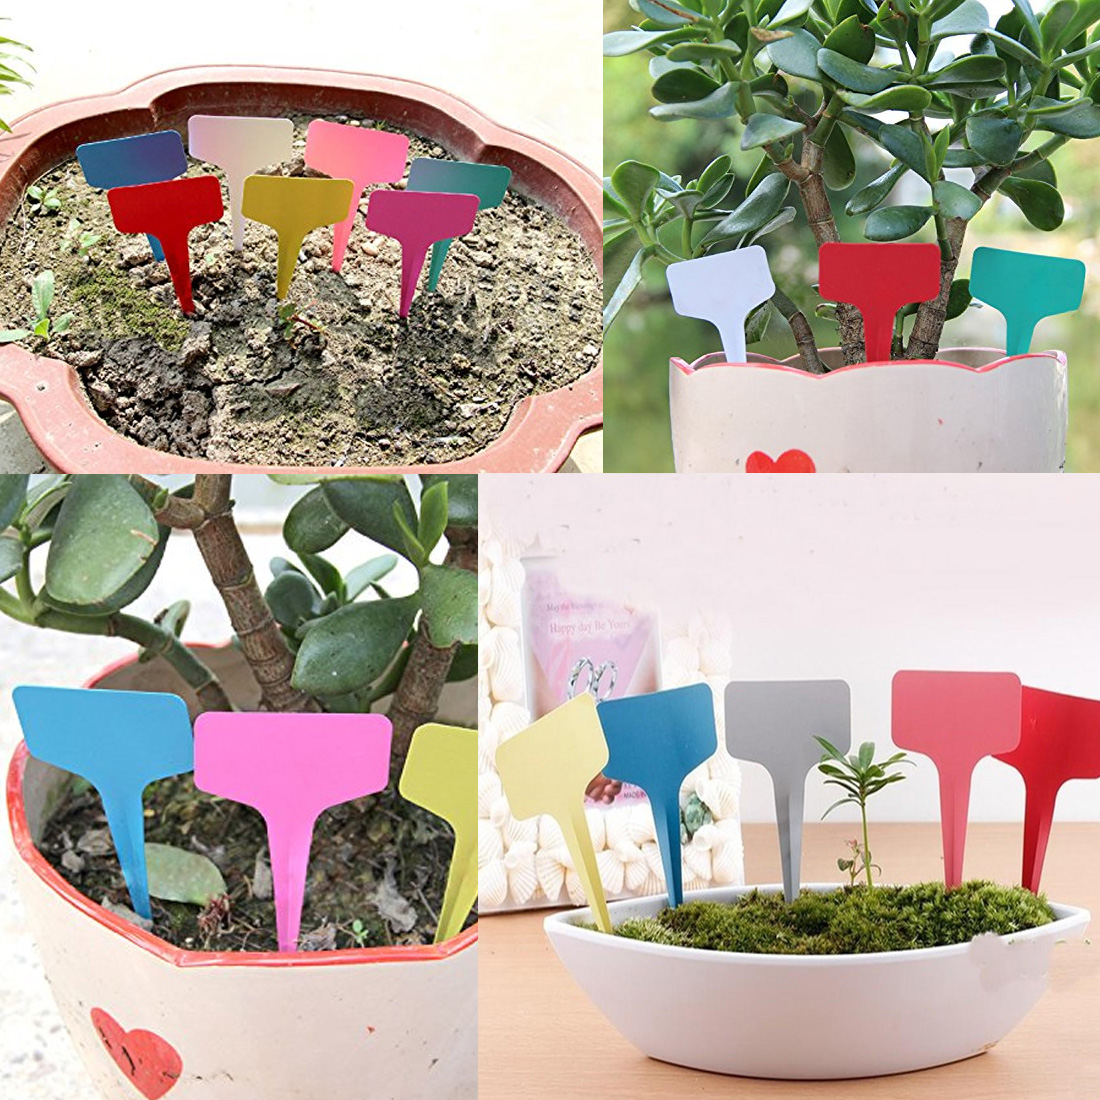 Faithful 20pcs Garden Seedling Tray Mark Tools Gardening Plant T Shape Waterproof Tags Flower Vegetable Fruit Planting Label Tools Farm Pruning Tools